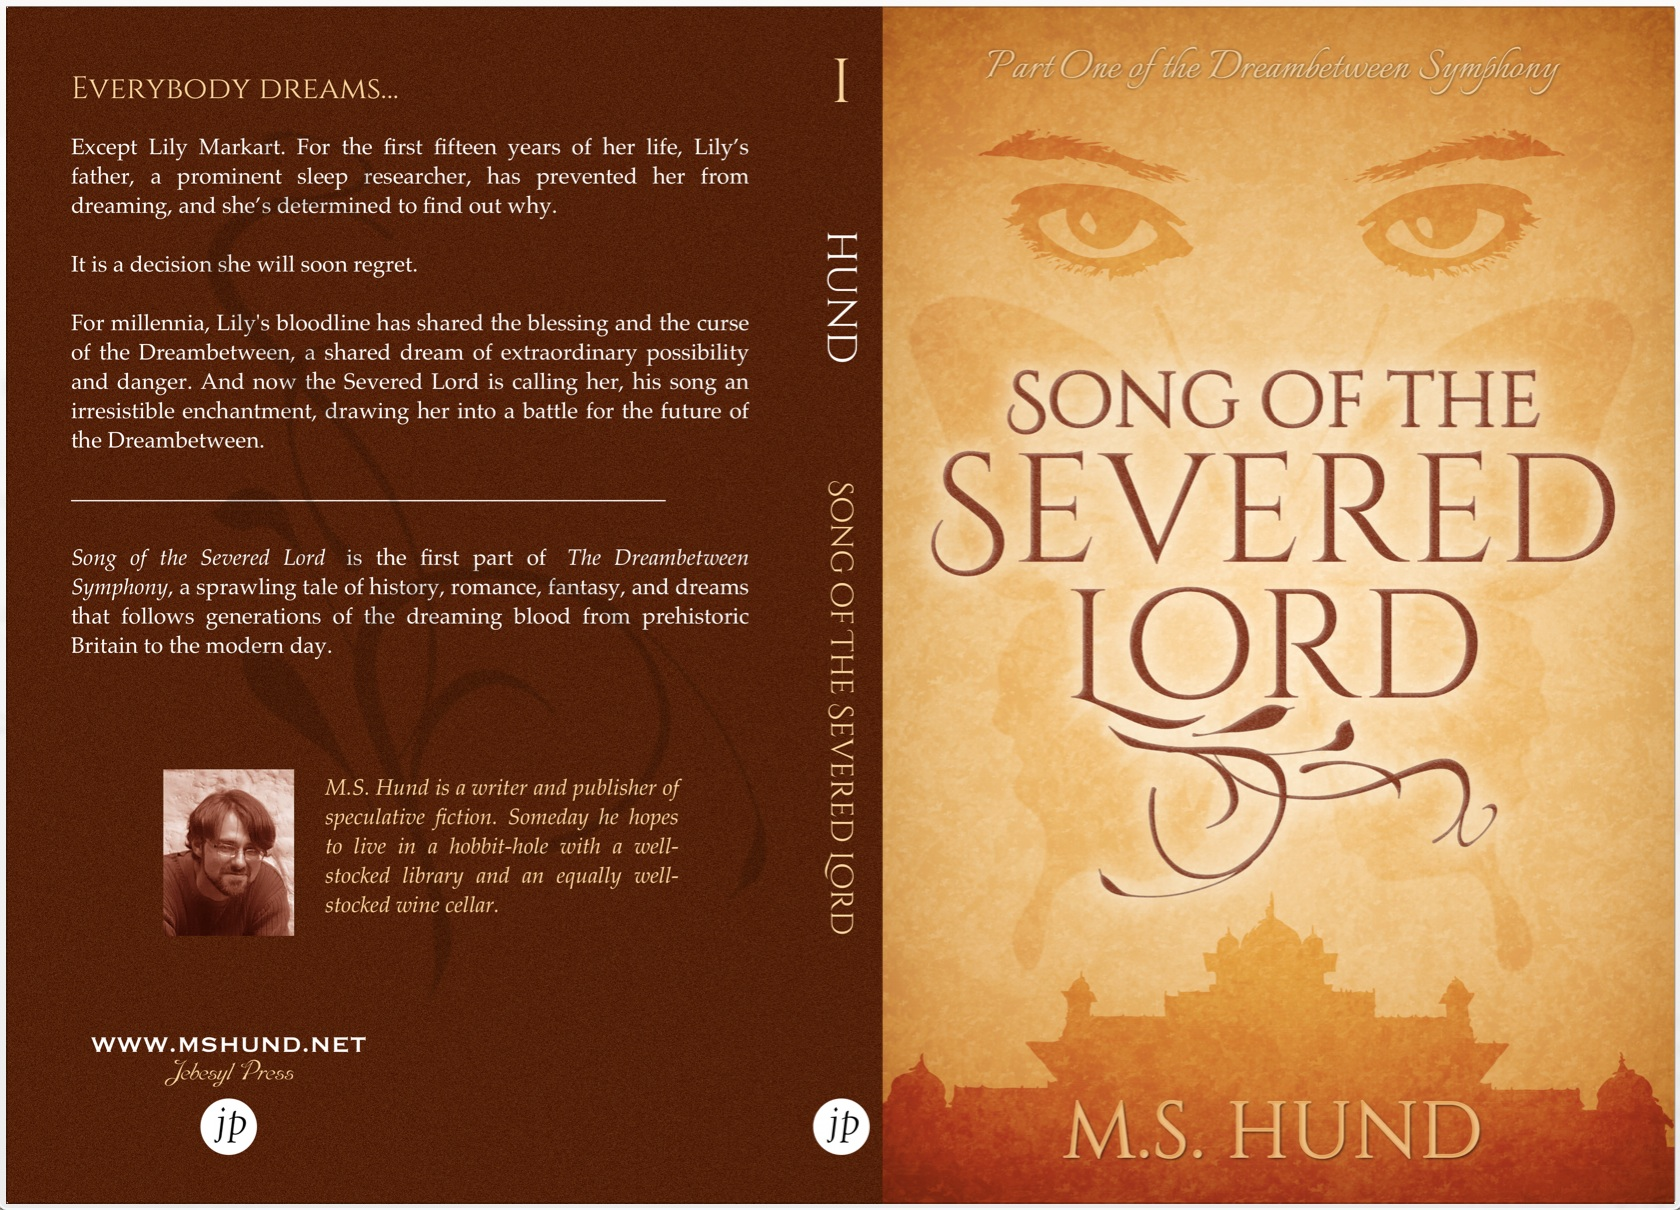 Back cover, spine, and front cover for print edition of SONG OF THE SEVERED LORD